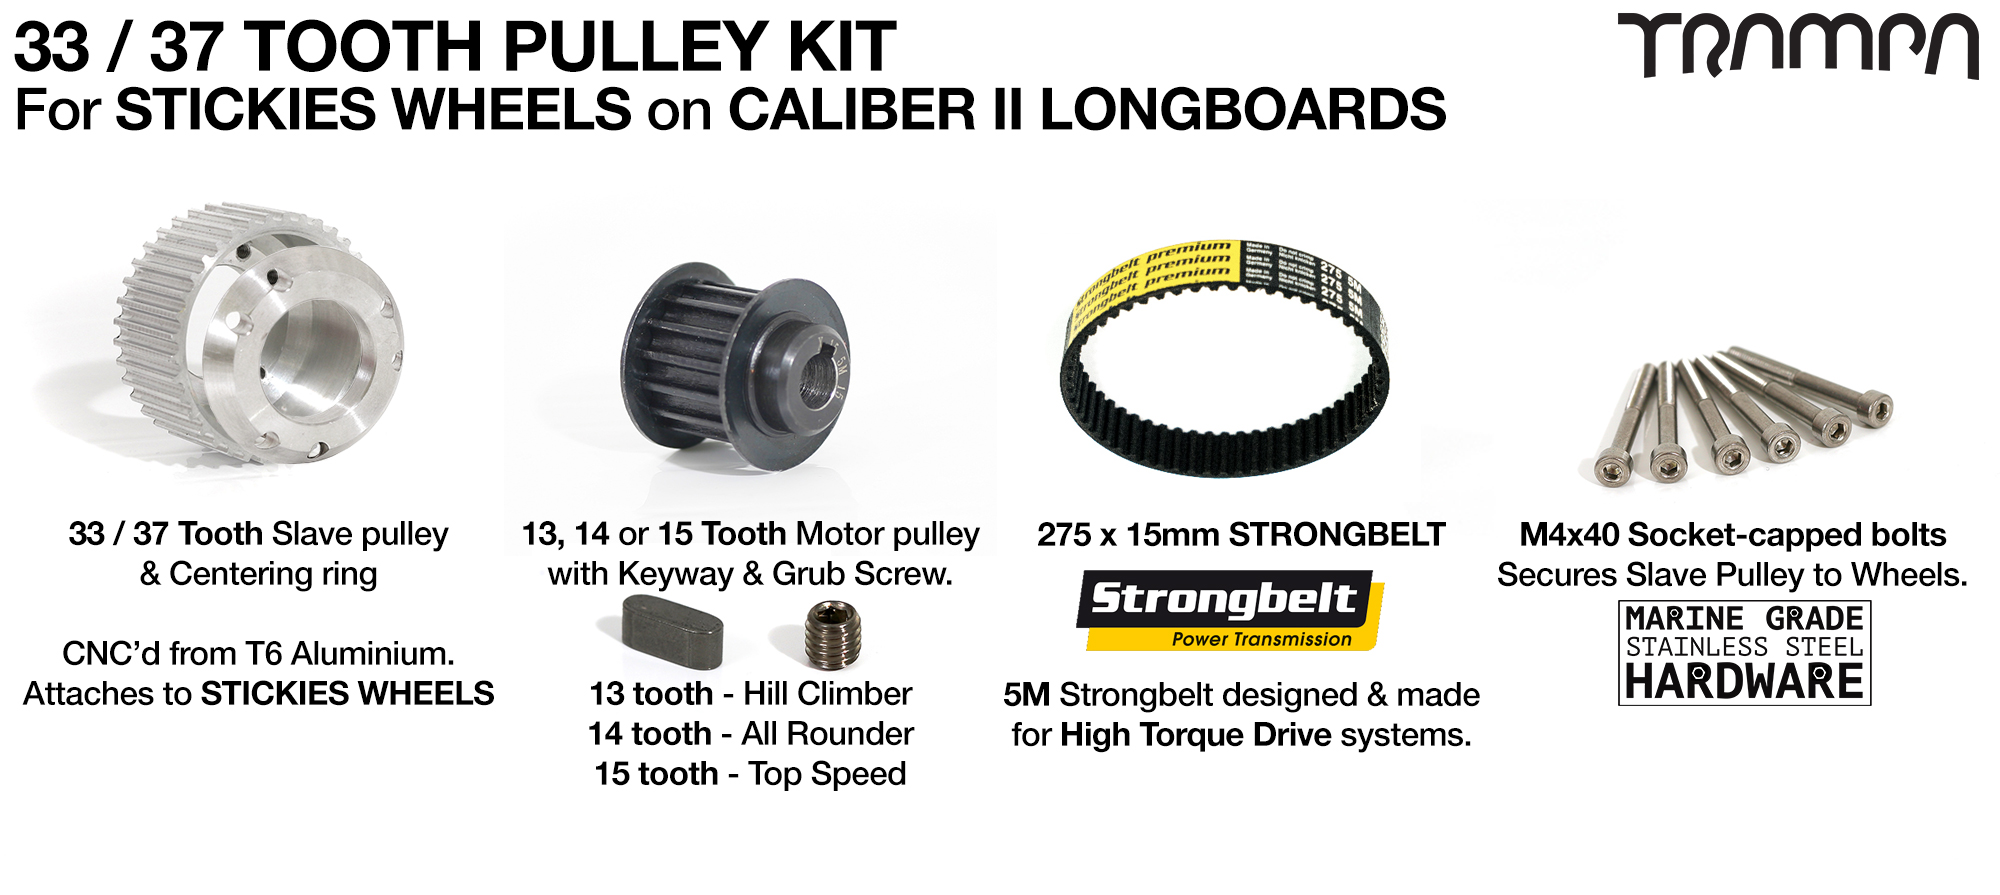 Caliber II Truck Pulley kit with 33 or 37 Tooth Slave & 275 Belt for 83 or 90mm STICKIES Wheels